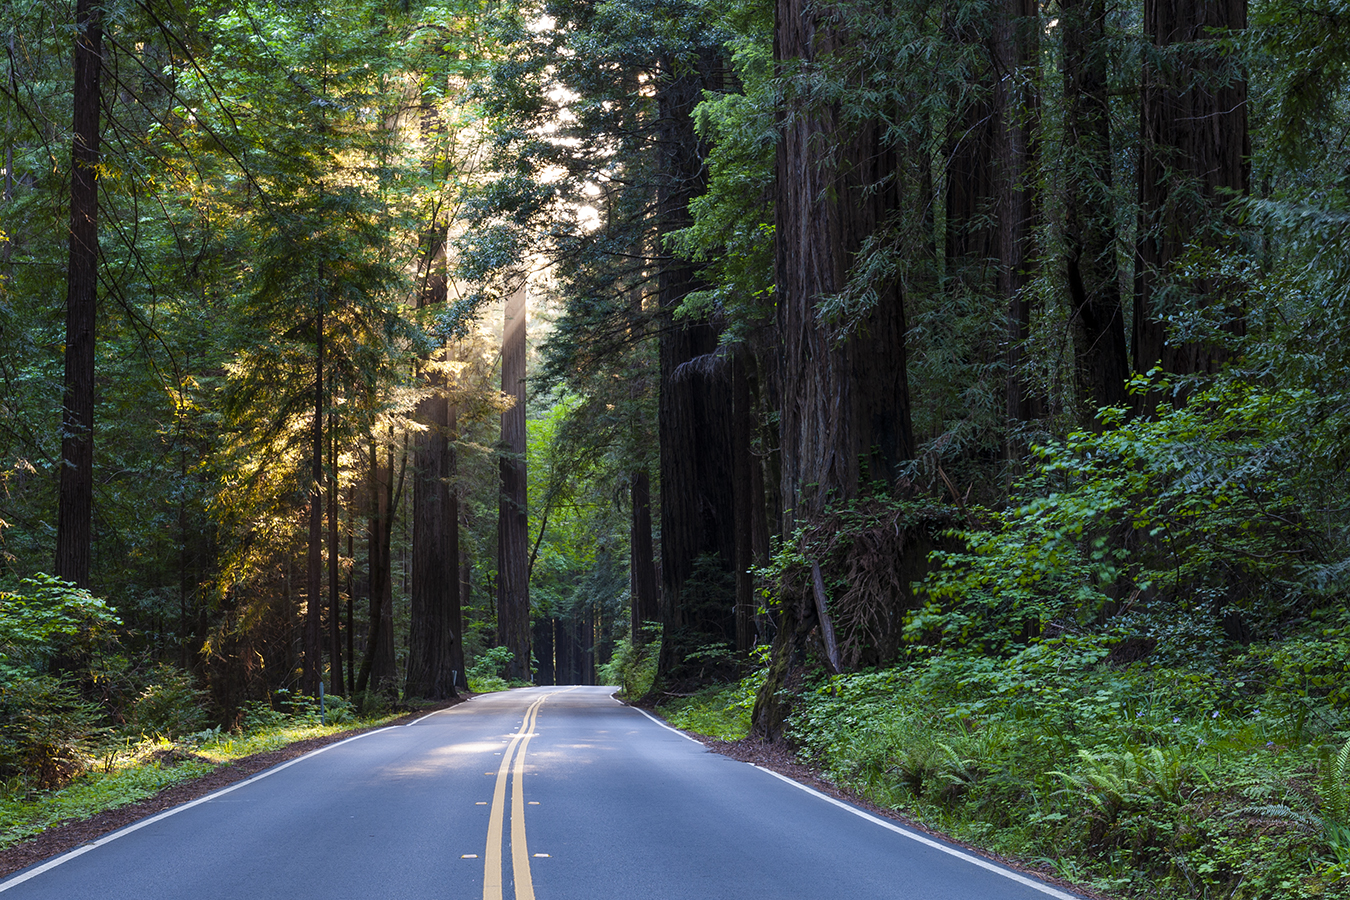 banner image is of Avenue of the Giants road and redwood trees